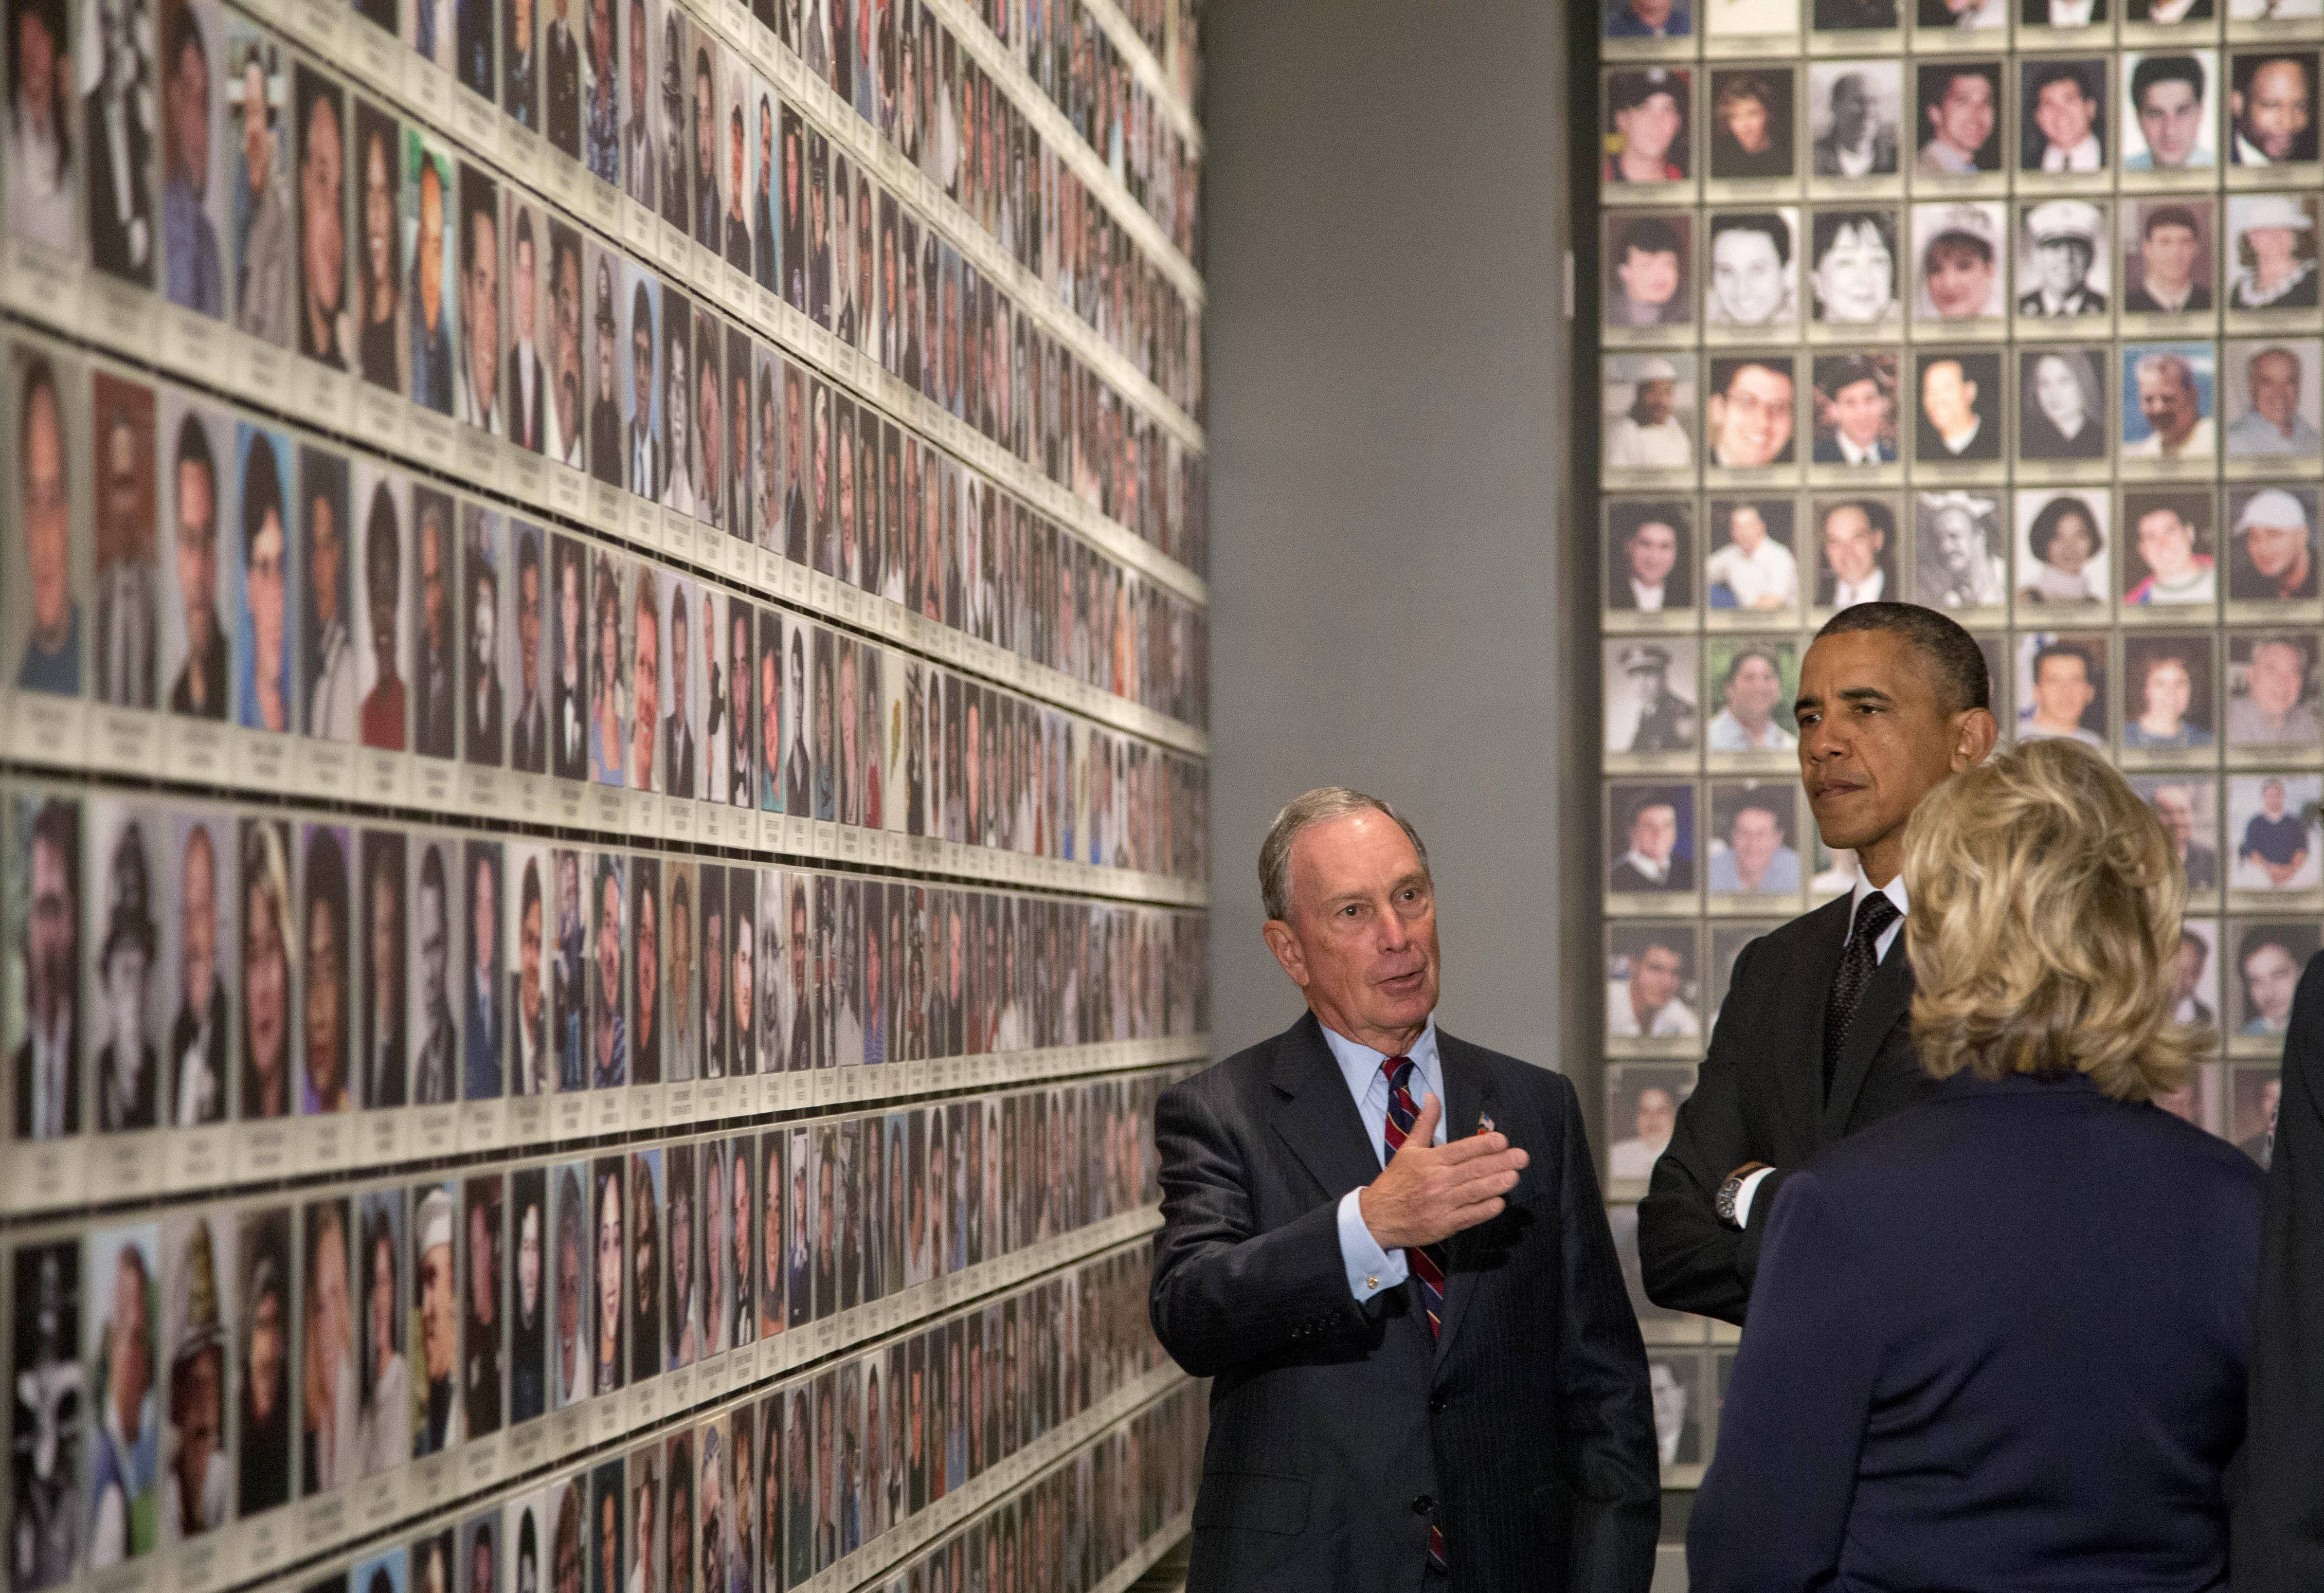 President Barack Obama and former Secretary of State Hillary Rodham Clinton tour Memorial Hall at the National September 11 Memorial Museum with former New York City Mayor Michael Bloomberg Thursday in New York. Speaking at the dedication, the president said, no act of terror can match the strength and character of the United States.